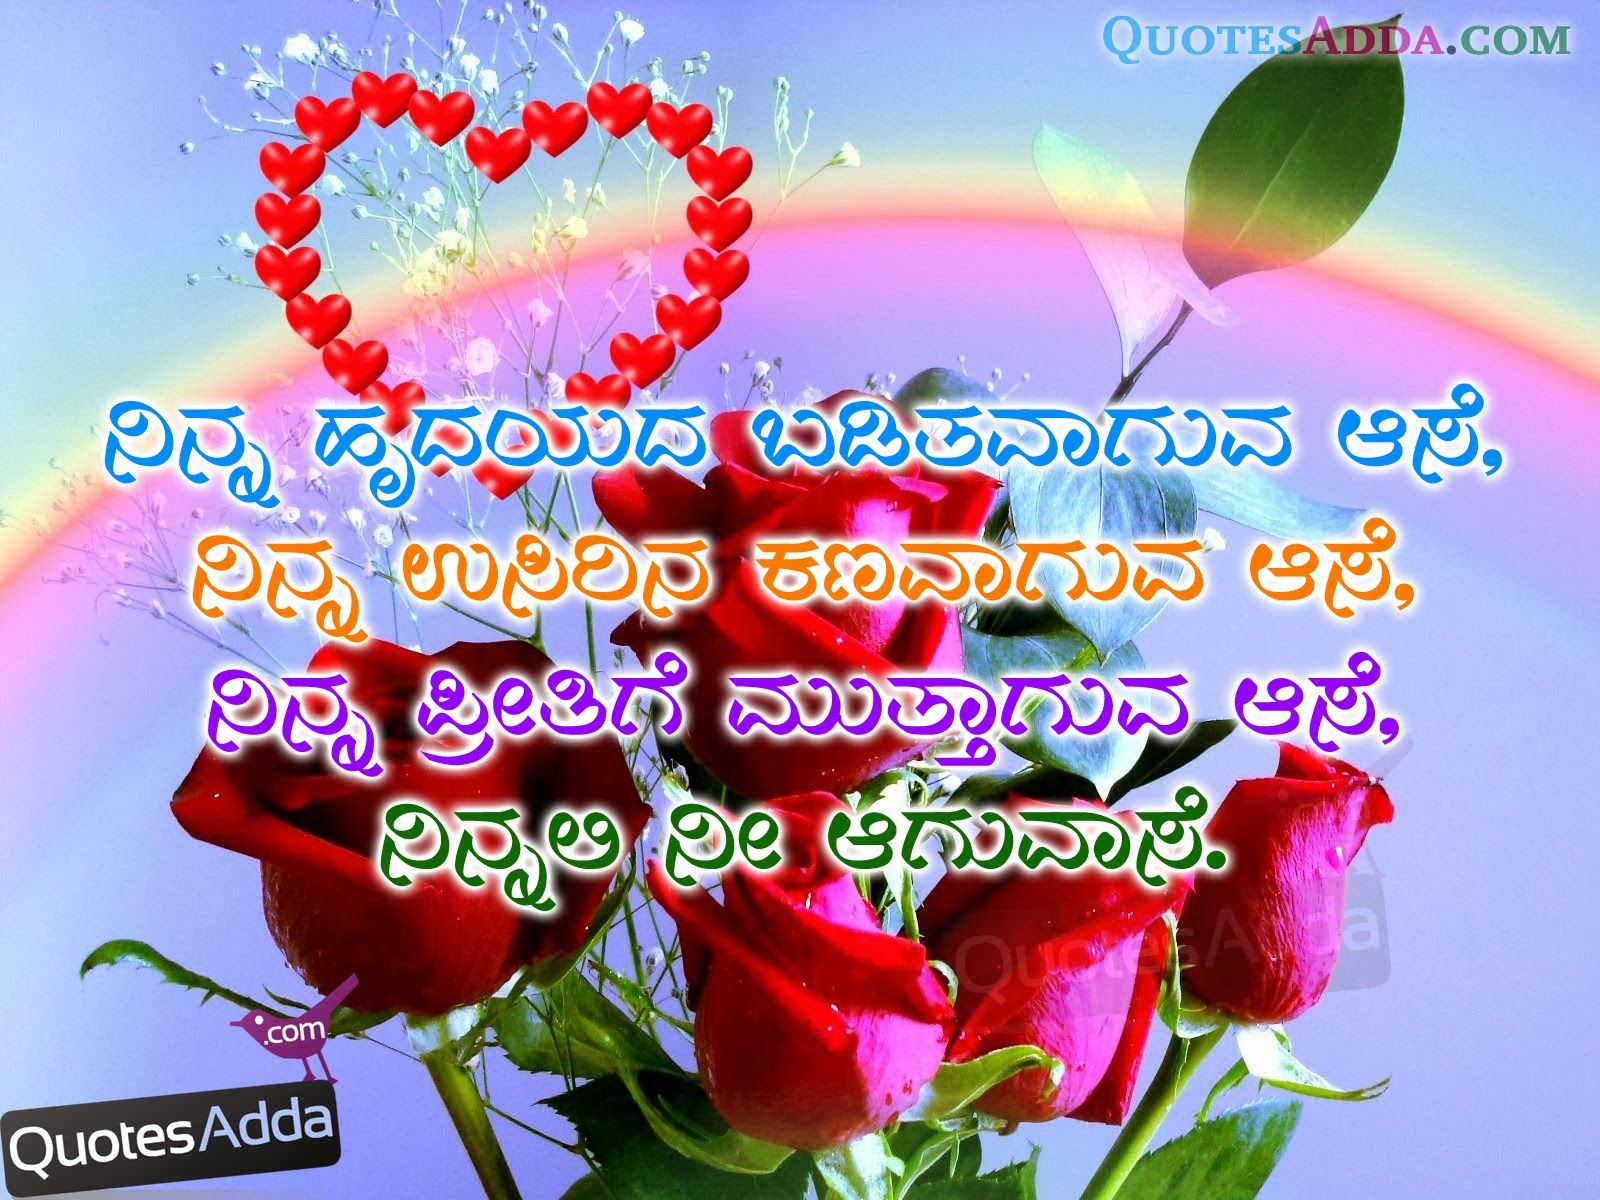 I Love You Messages Kannada Love You Messages Love Quotes For Wife Romantic Love Messages